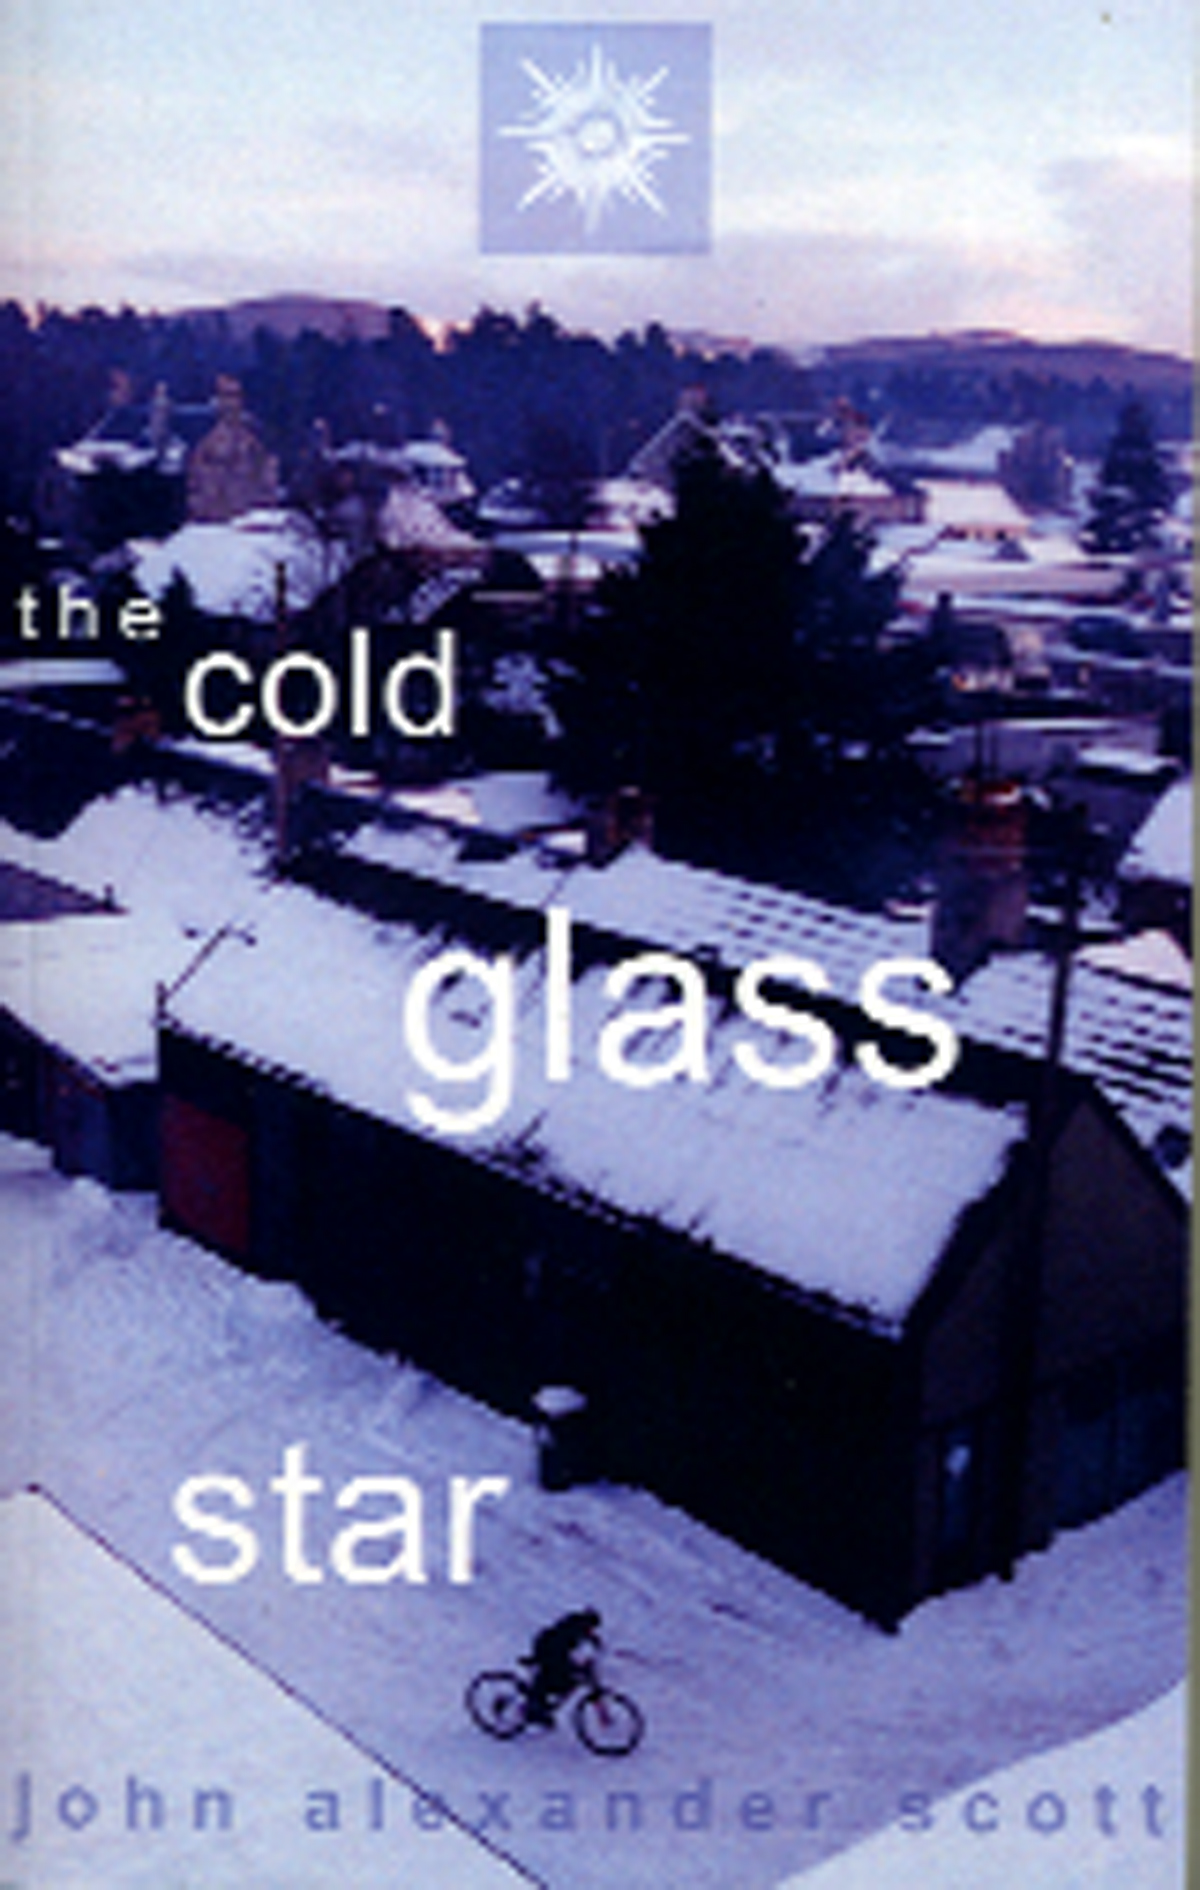 The Cold Glass Star